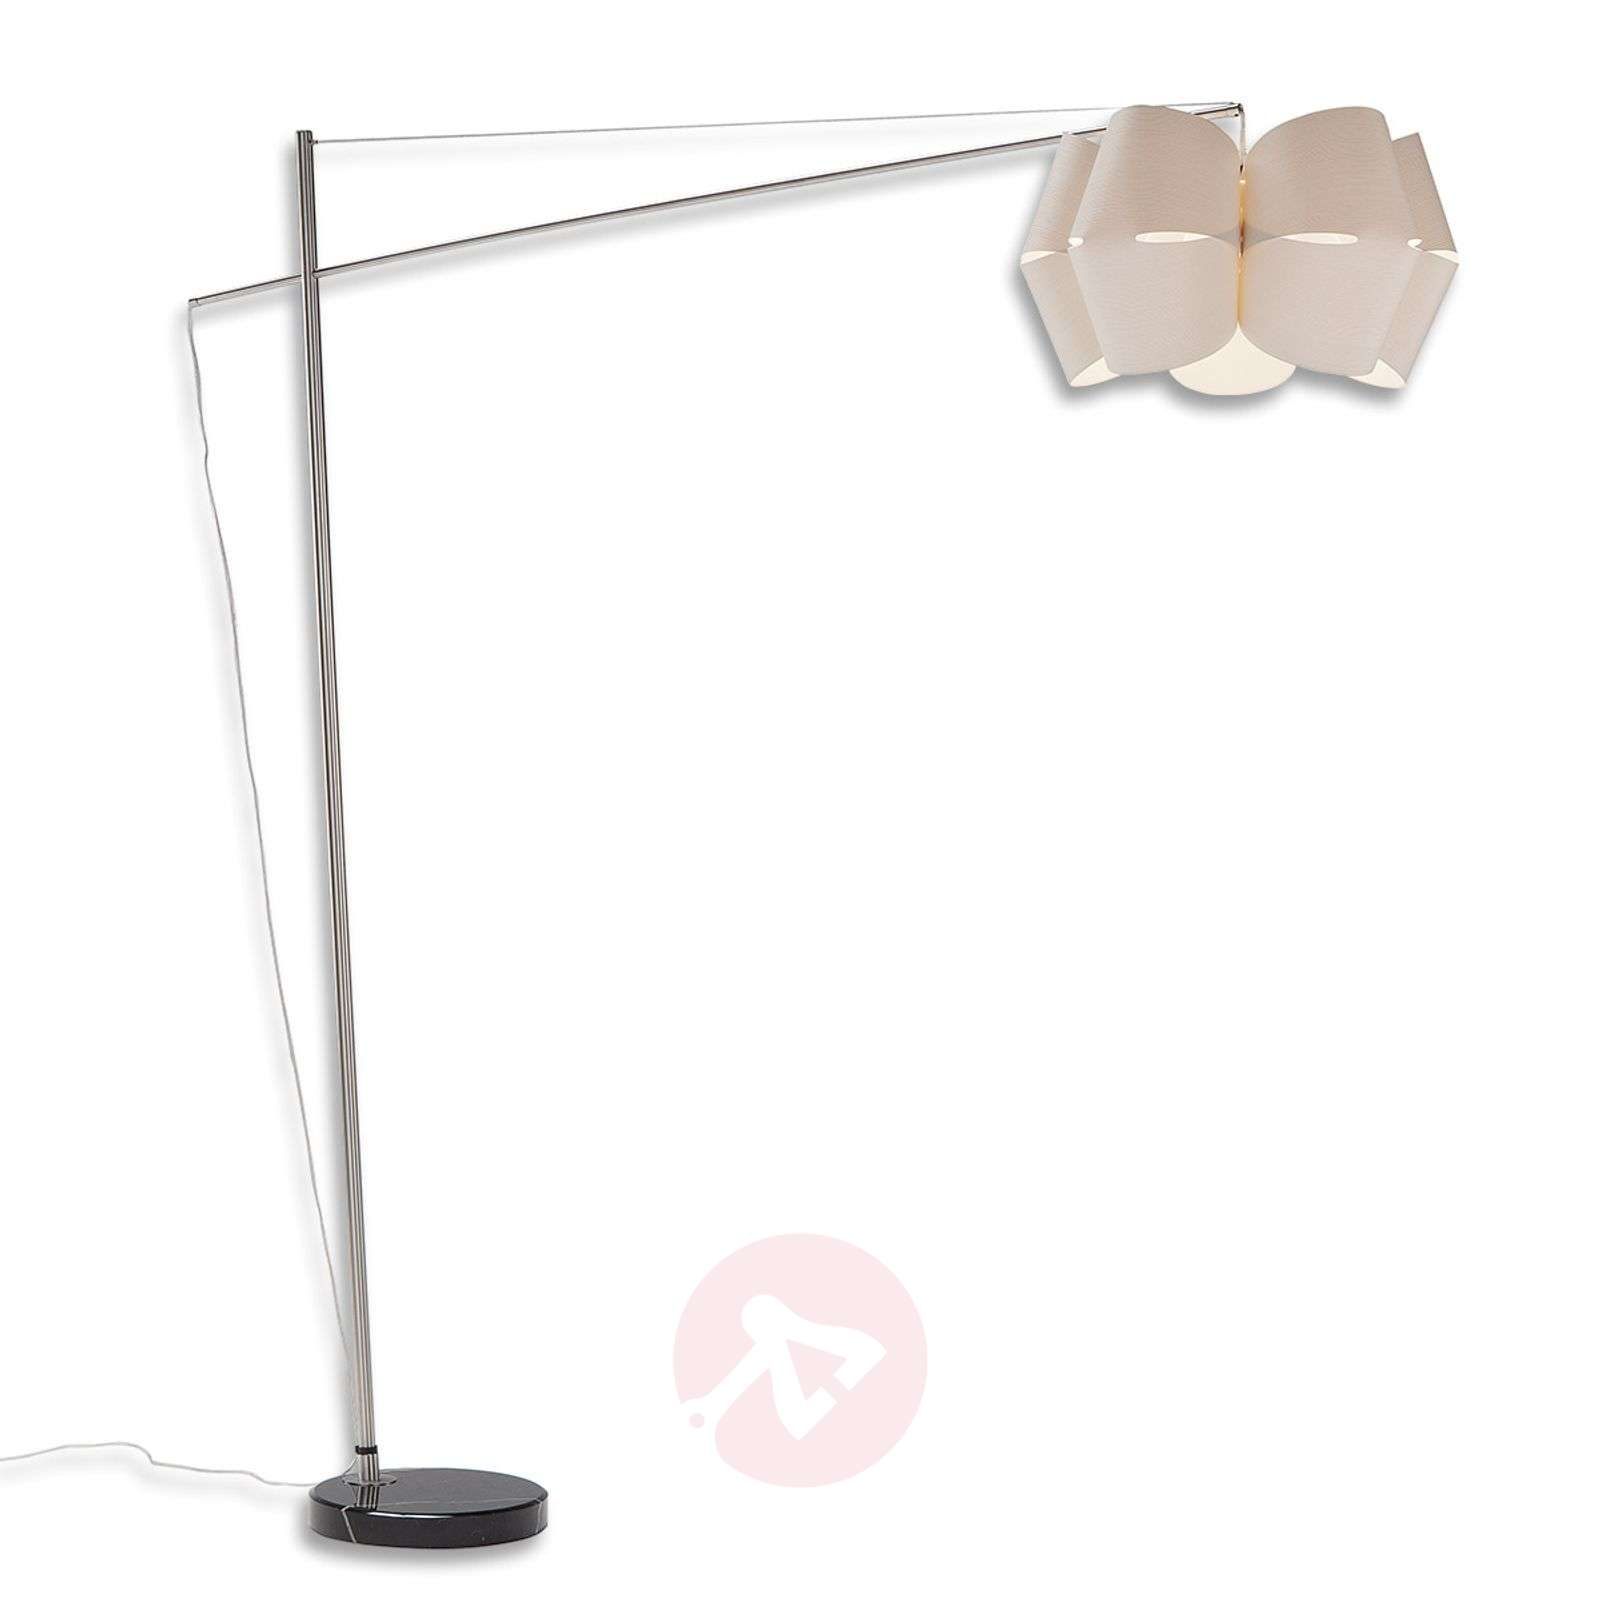 Floor lamp Bridge in white larch wood-1056064-01